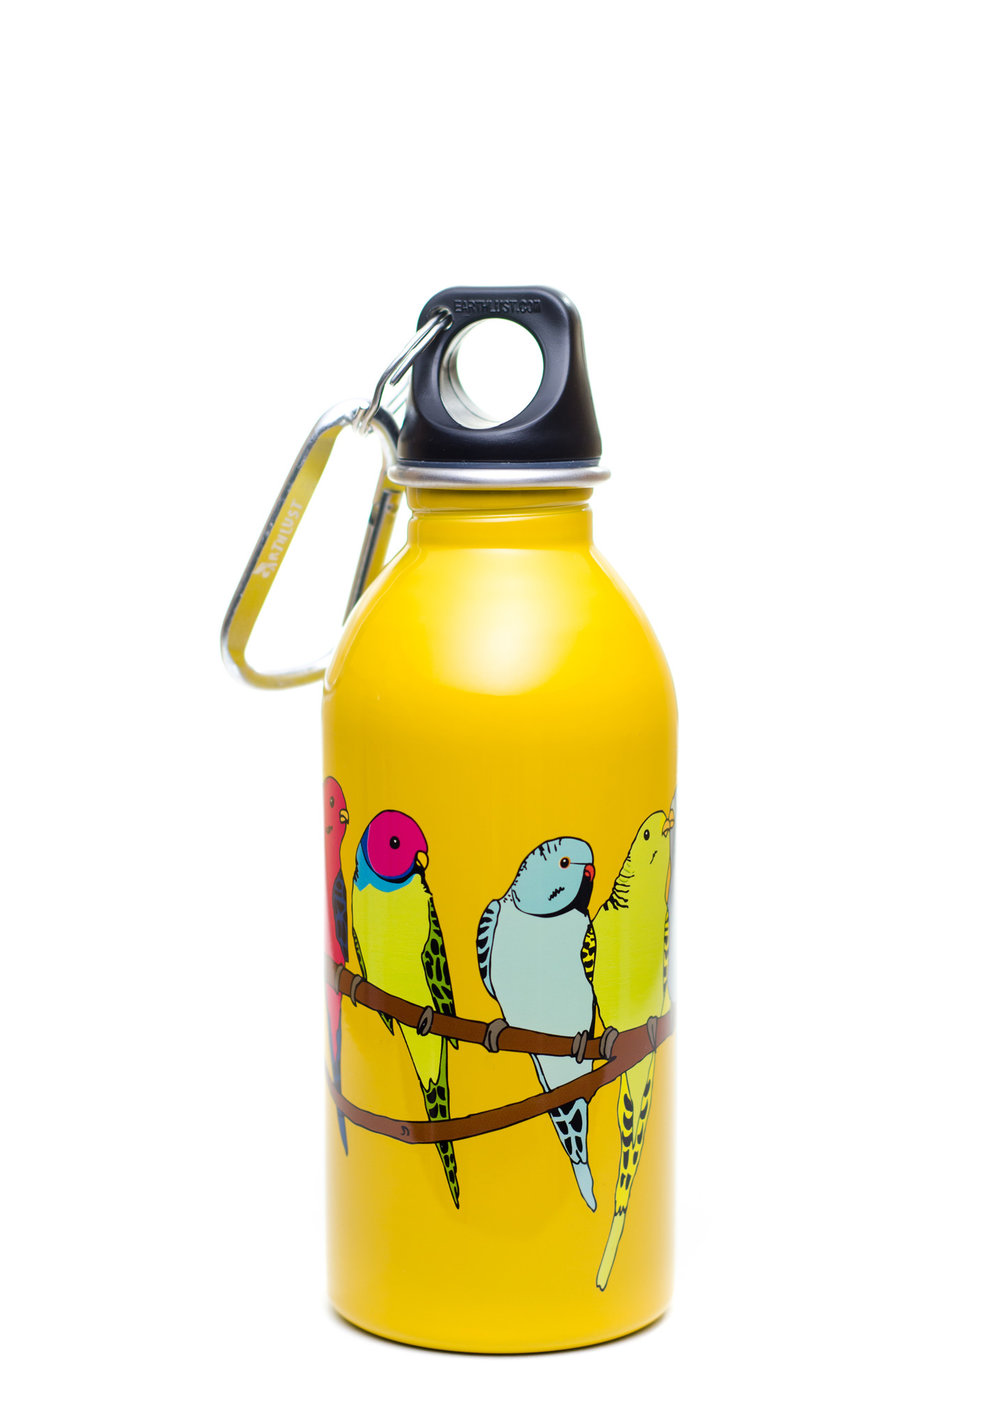 Parakeets design, 13 oz bottle.